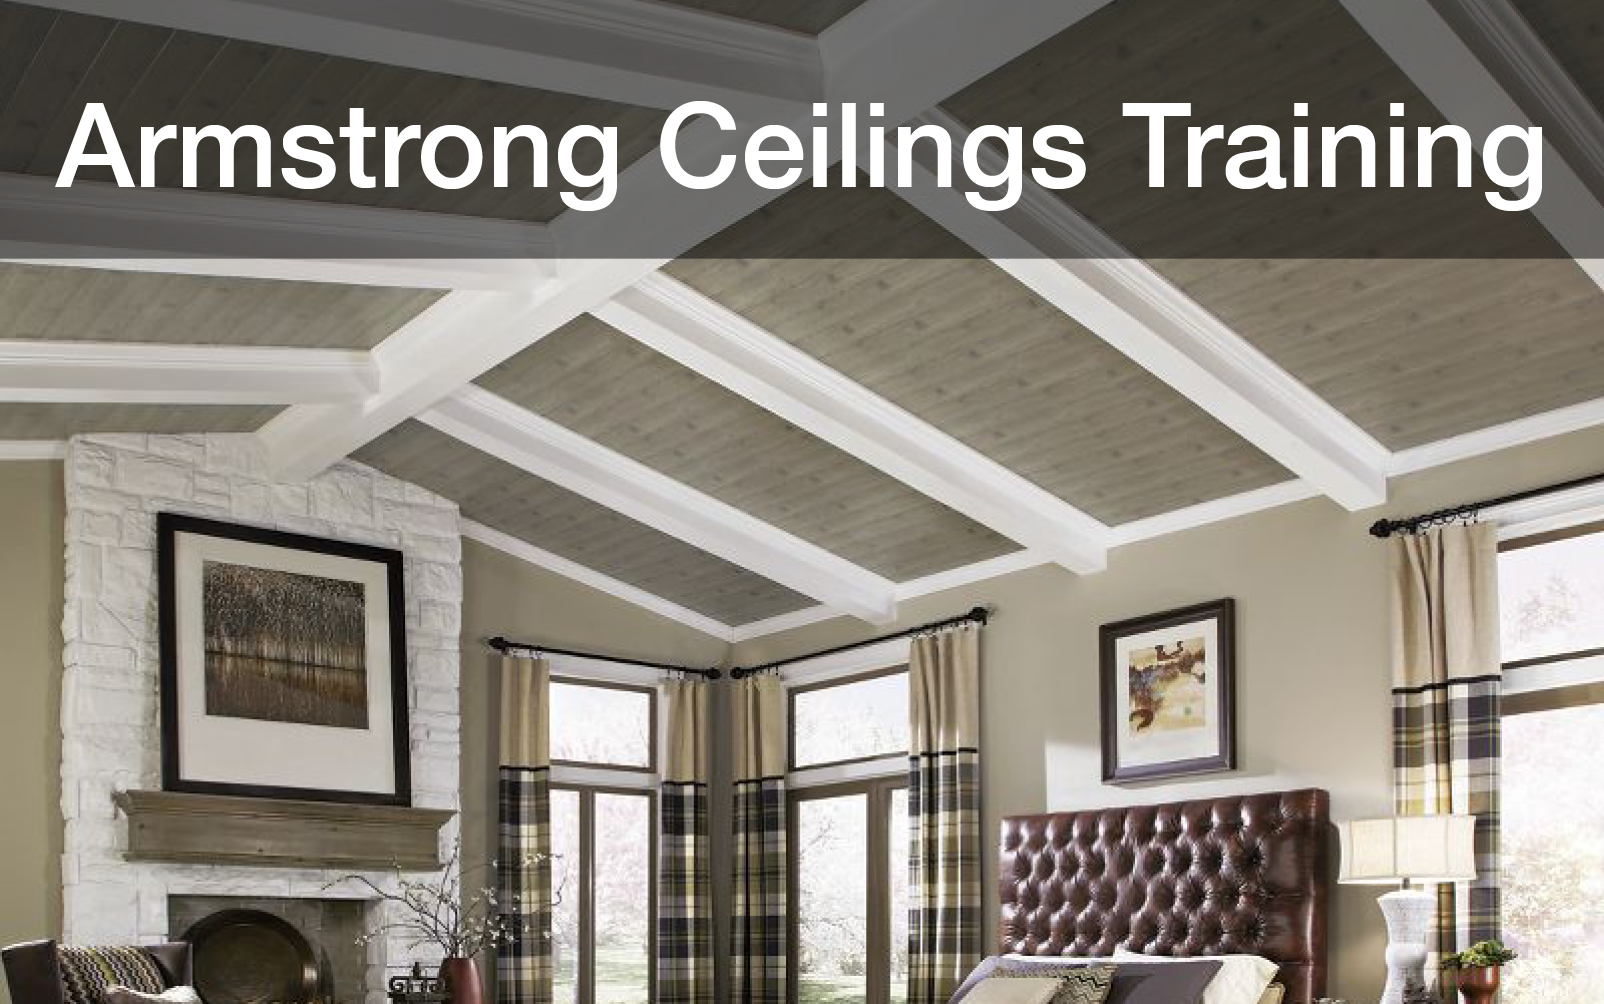 Armstrong Ceilings Training